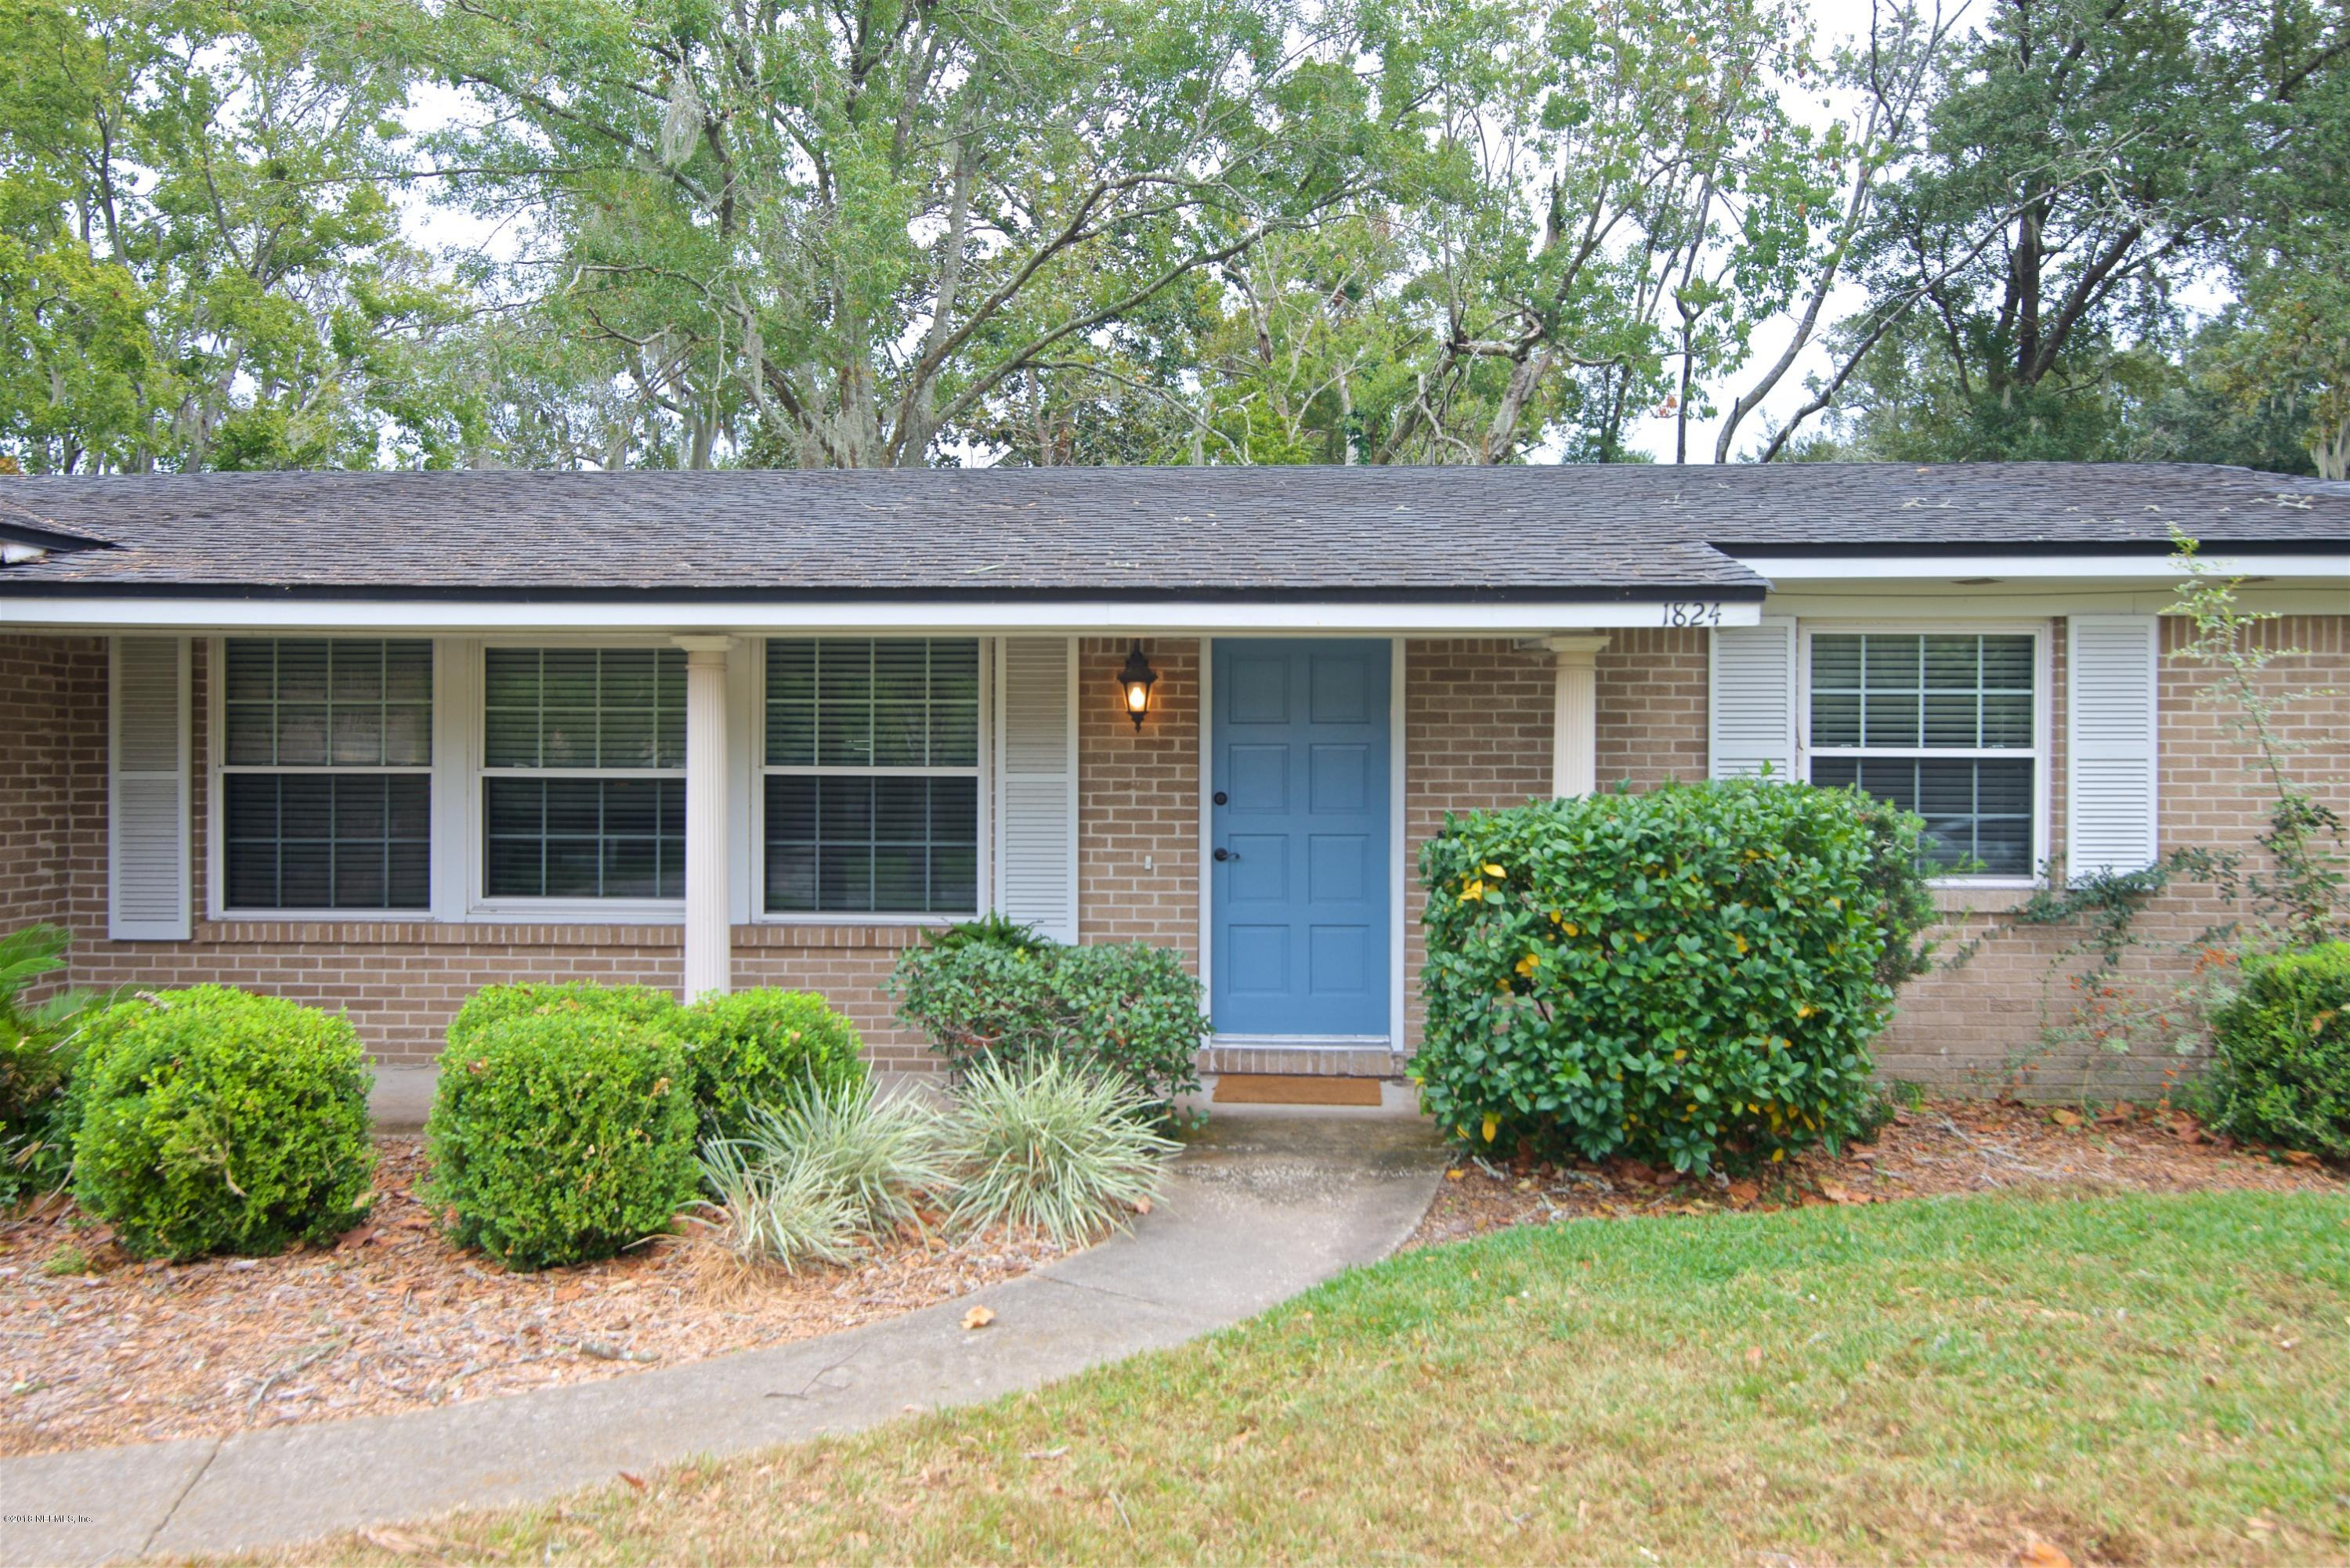 1824 ARDEN, JACKSONVILLE BEACH, FLORIDA 32250, 3 Bedrooms Bedrooms, ,2 BathroomsBathrooms,Residential - single family,For sale,ARDEN,965550